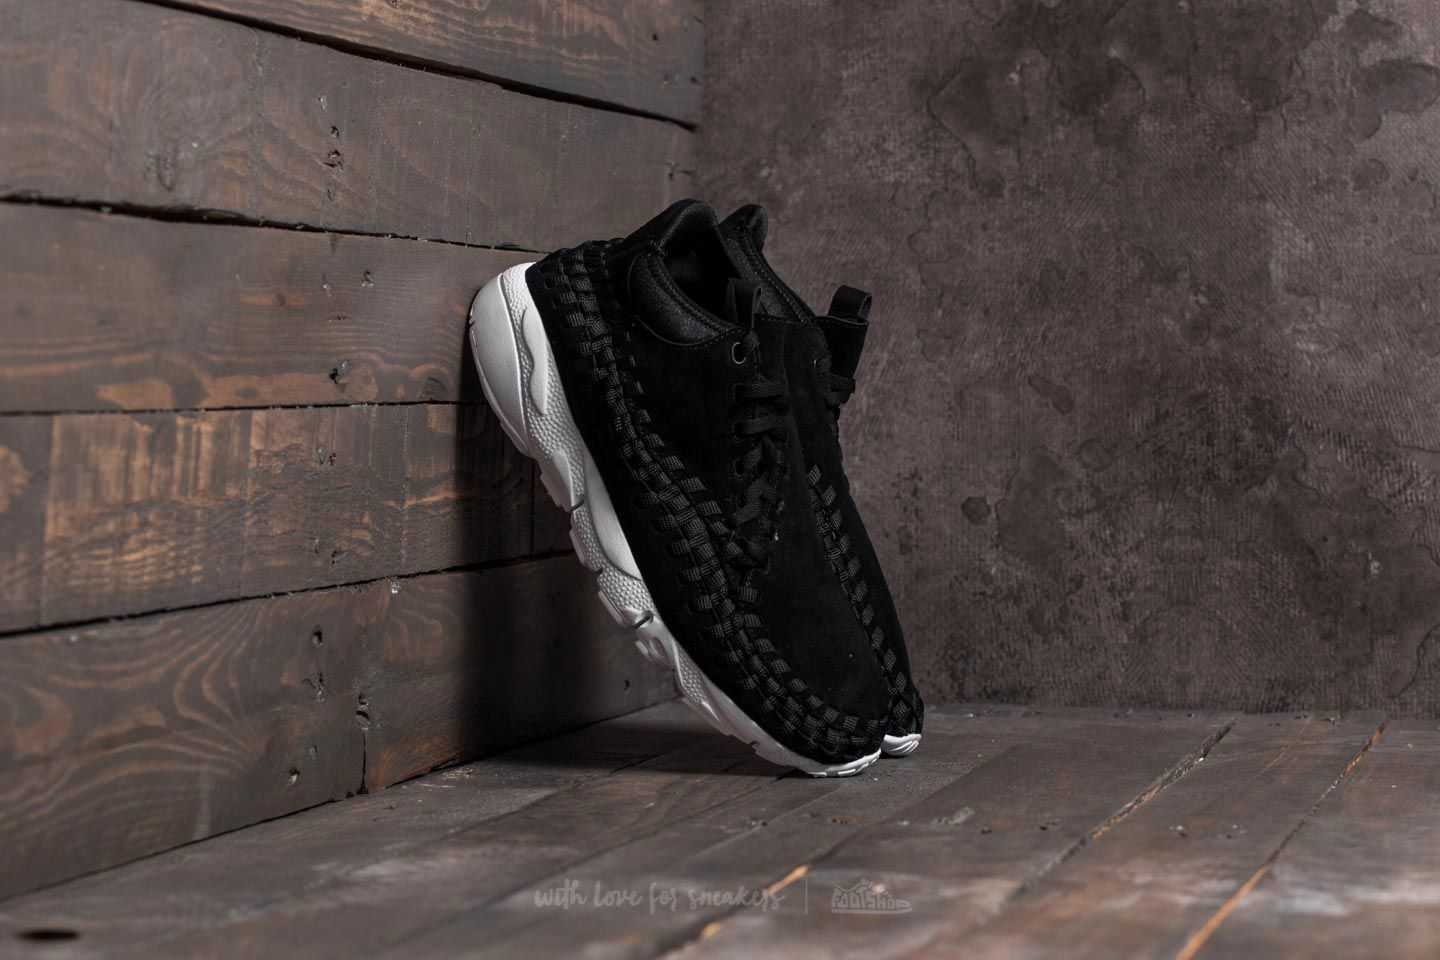 online store 7a2b2 b0173 Nike Air Footscape Woven Chukka Black/ Black-White | Footshop